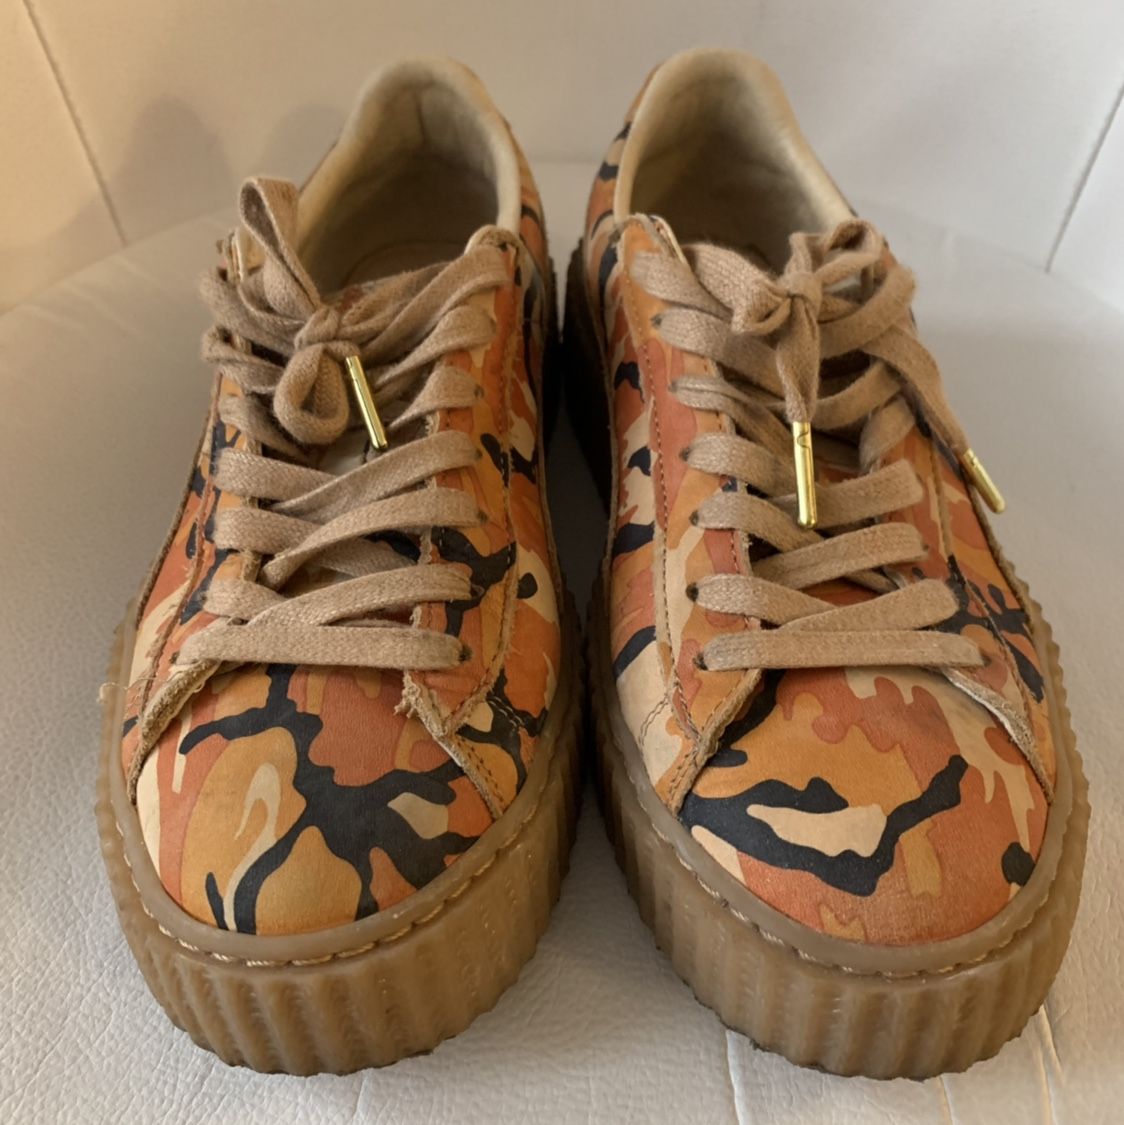 hot sale online f6026 5689d FENTY PUMA CAMO CREEPERS 100% AUTHENTIC GREAT... - Depop